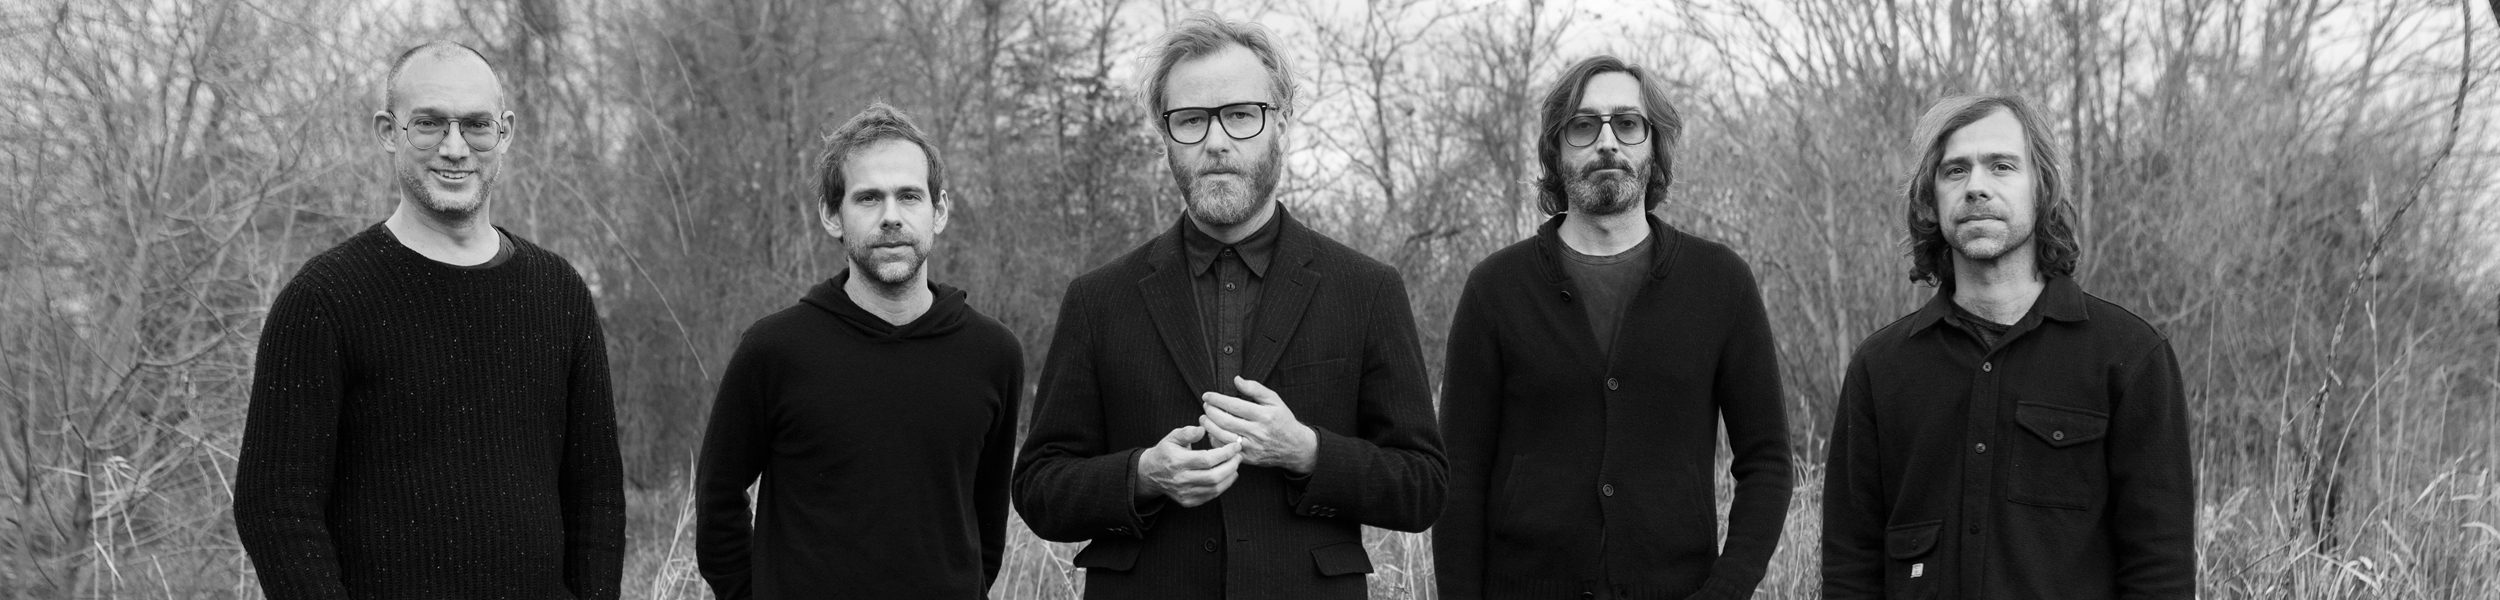 The National - MTV Premiere For The National's 'Conversation 16' Video